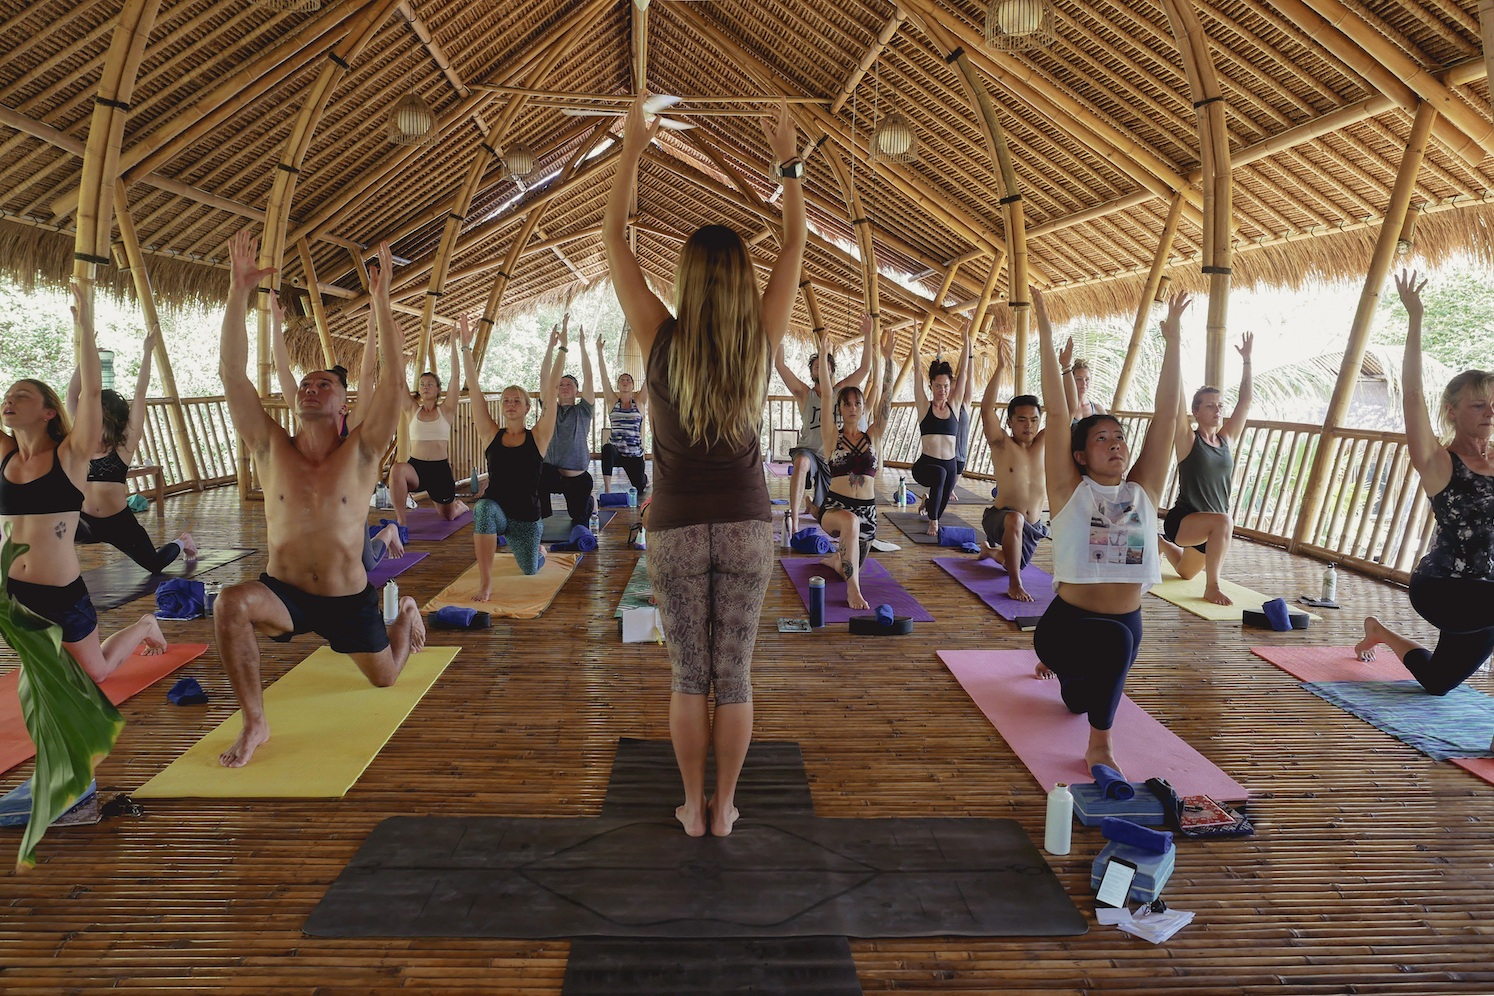 Sunday October 27th  6:45am - Breakfast 7:30am – Departure to Gili Meno Island 9:00 – Fast Boat Ride to Gili Meno 12:30pm – Check into  Seri Resort  FREE TIME 7:00pm – Dinner 8:30pm – Yin Yoga